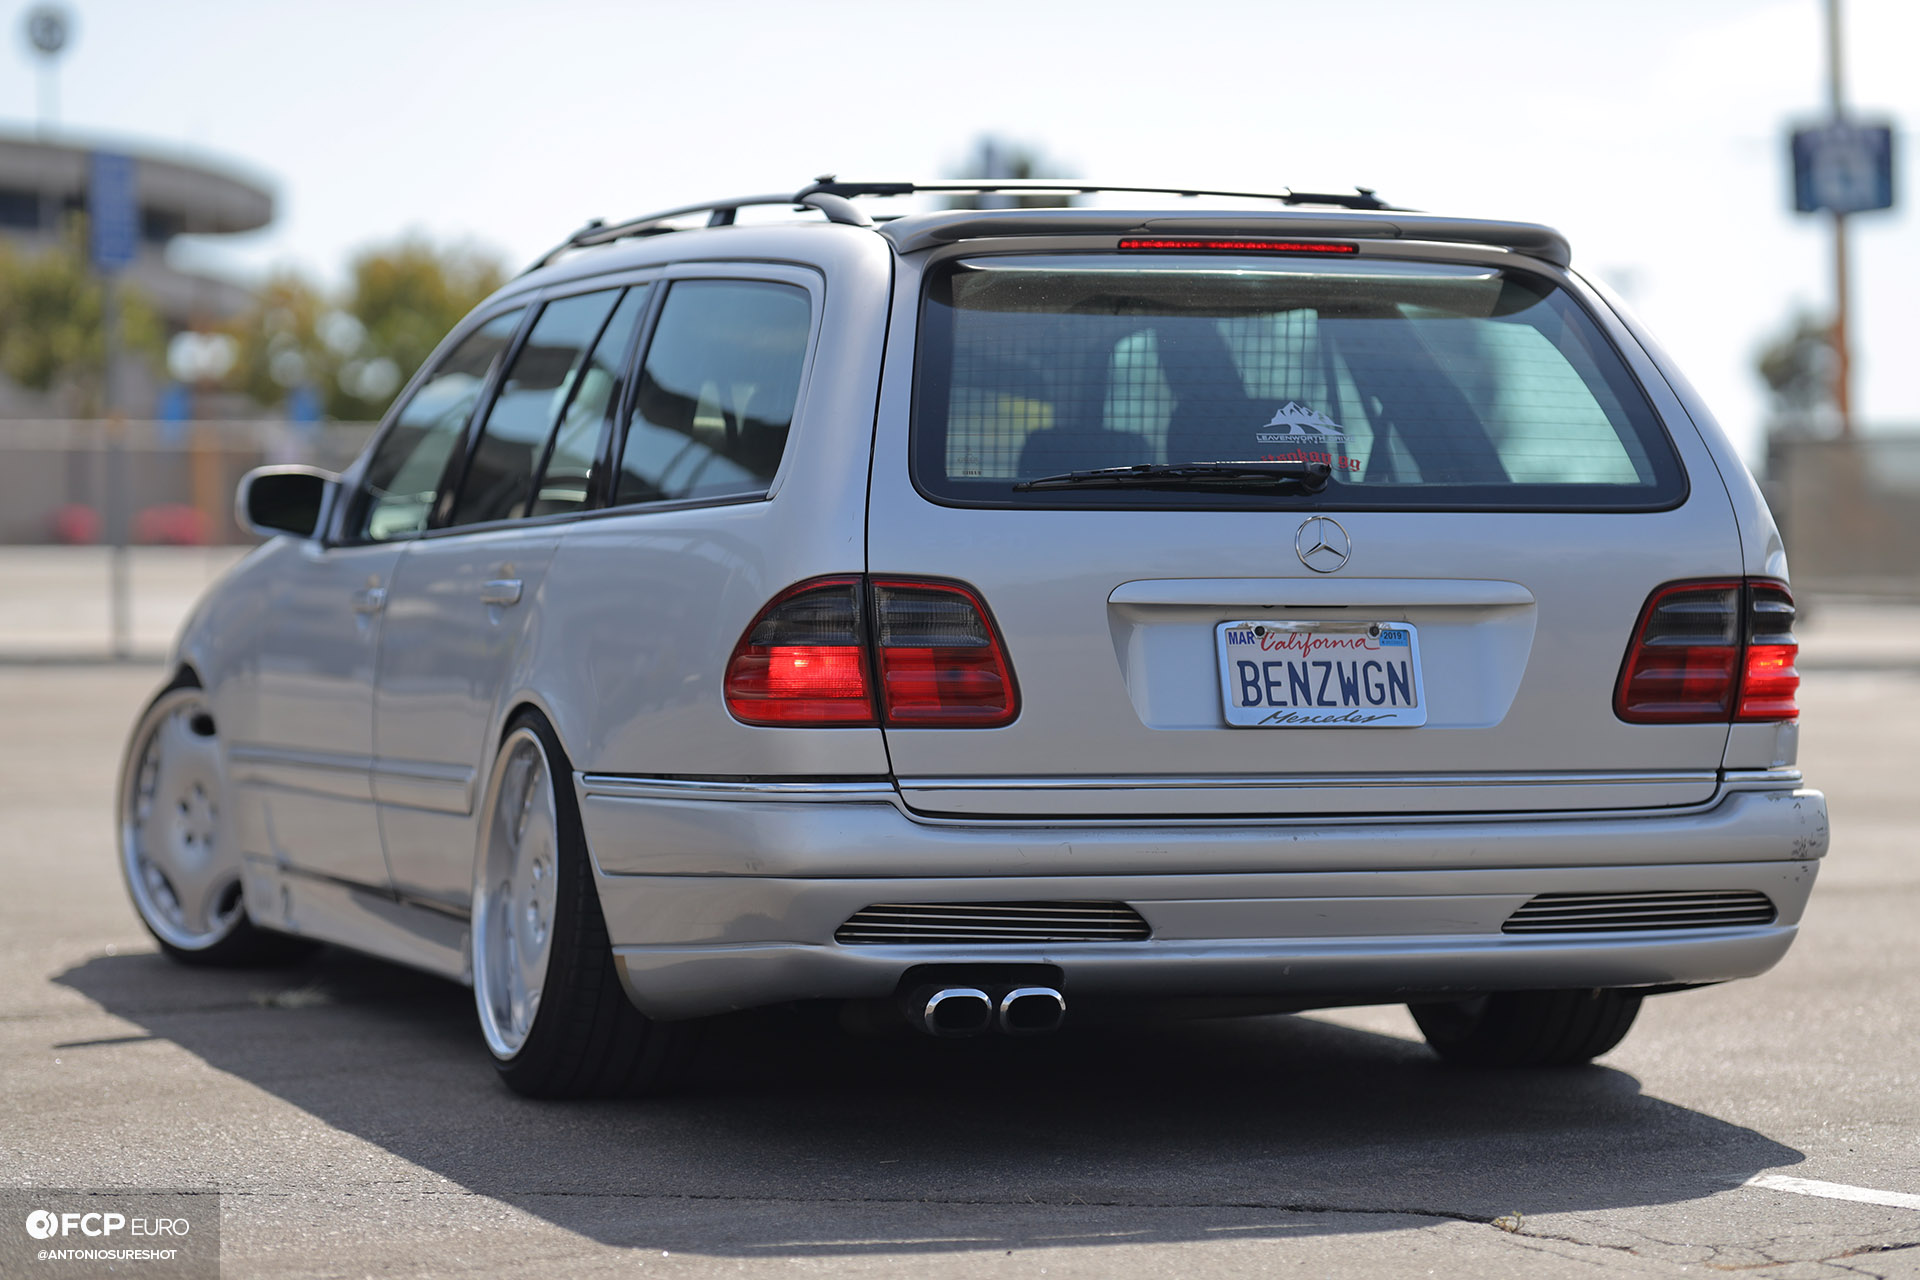 Mercedes Benz AMG E55 swapped E320 wagon 1920wm EOSR2597